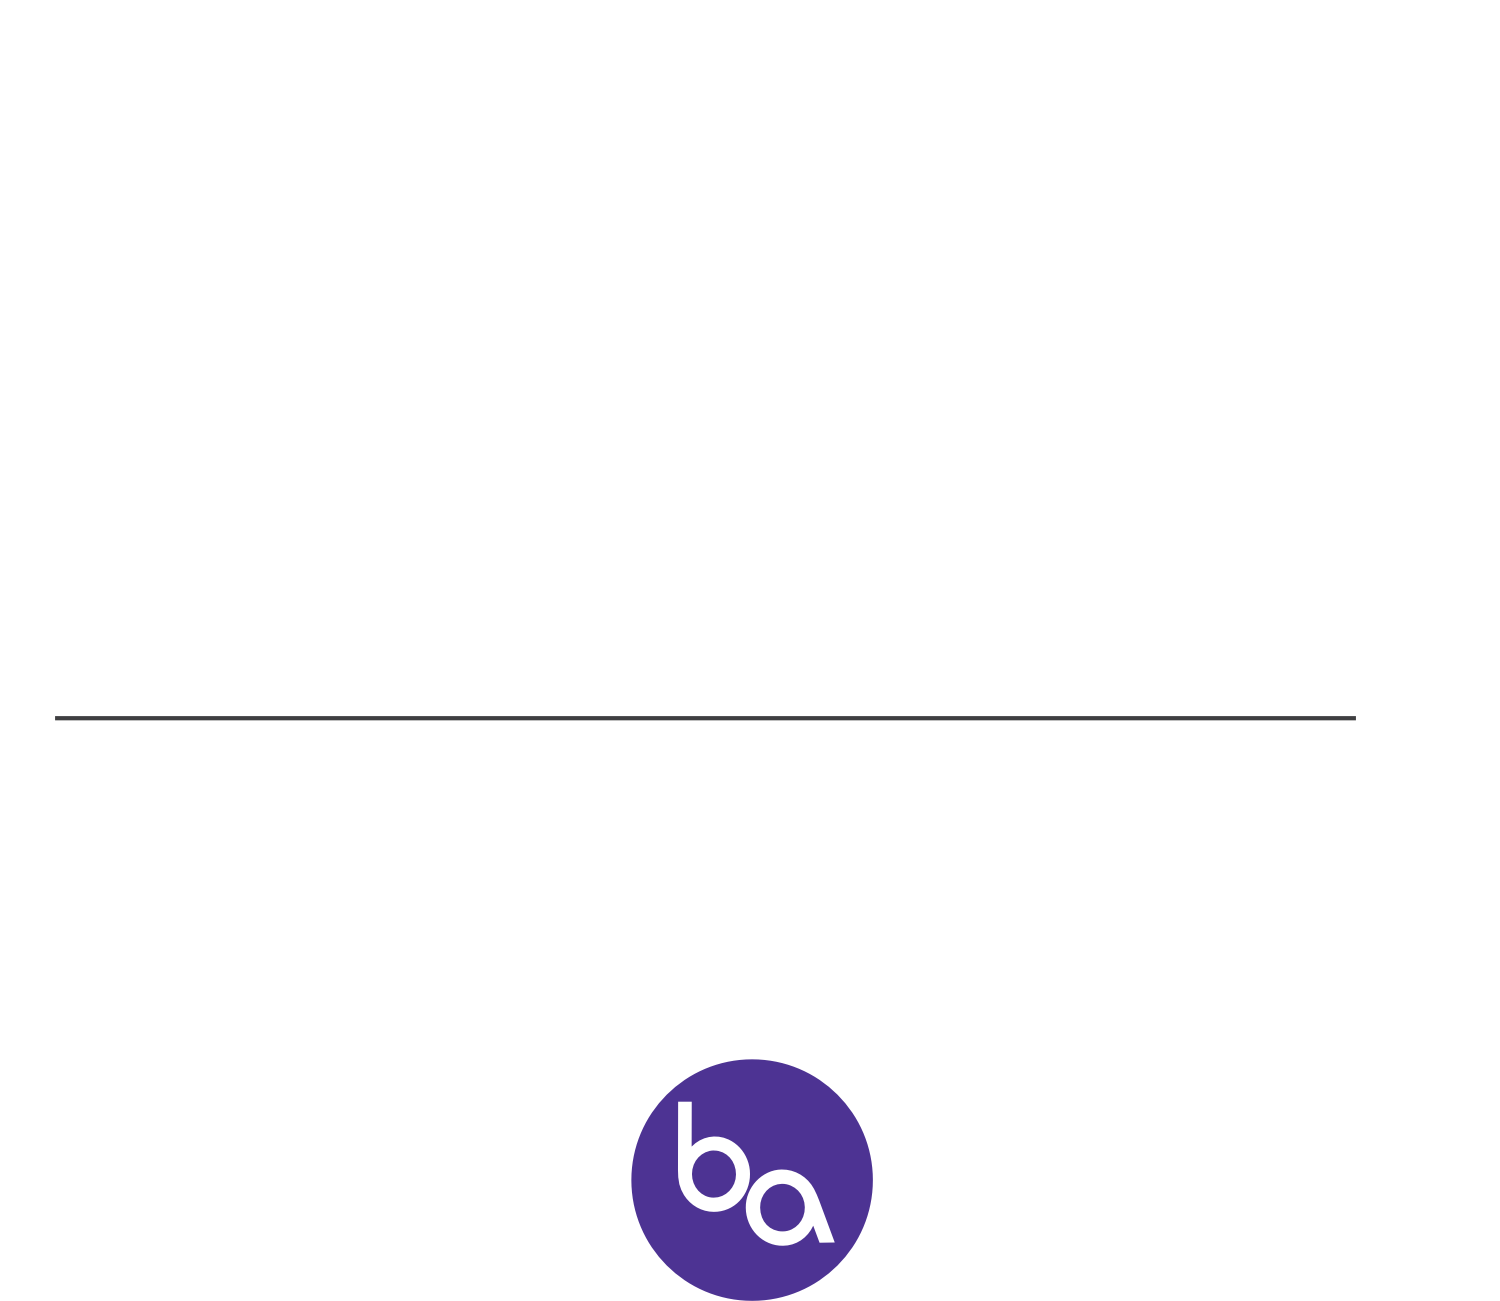 logo-the-screening-room.png